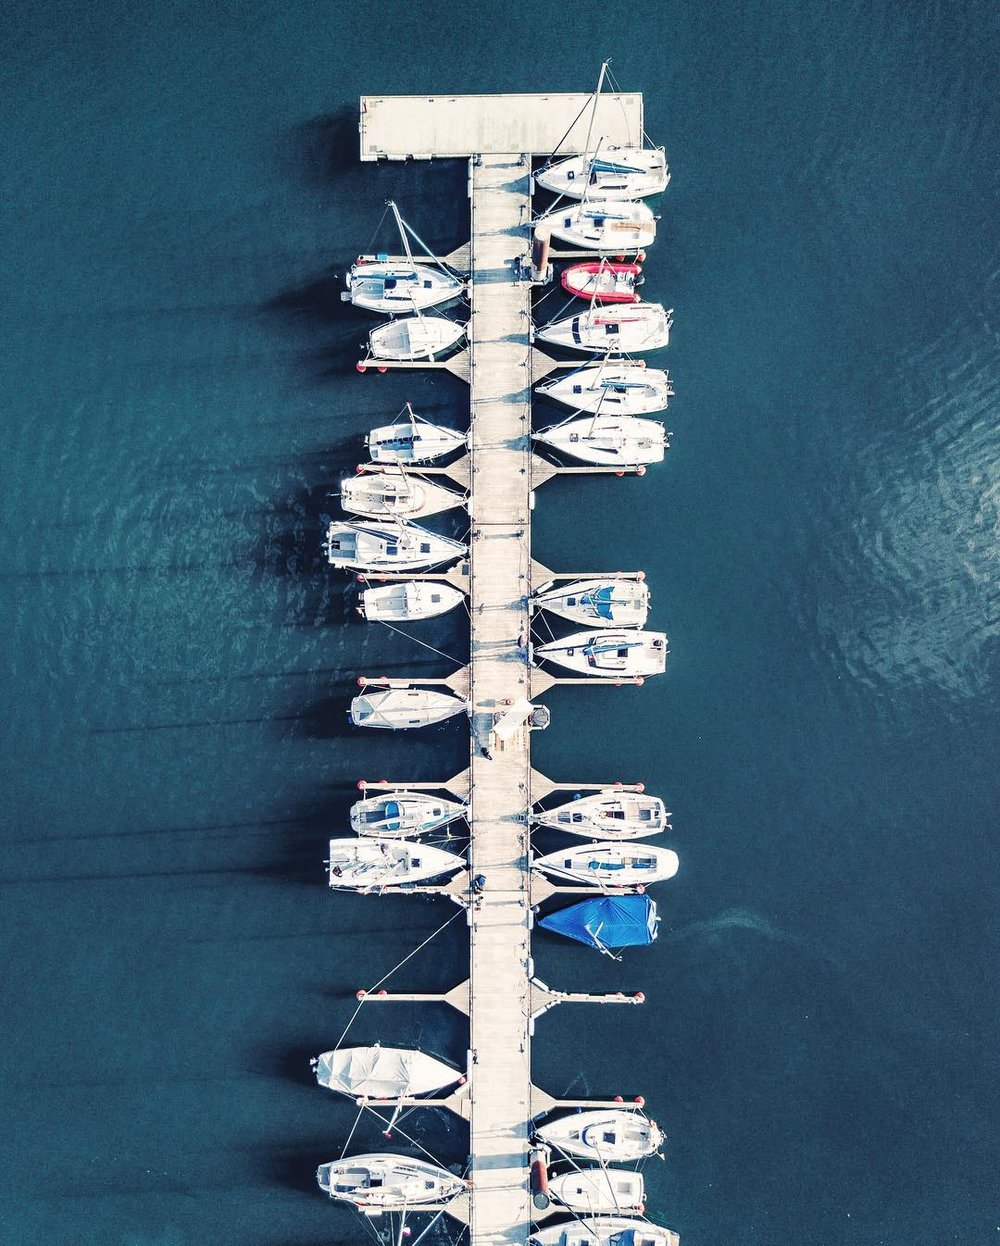 Boats. Brombachsee, Germany.